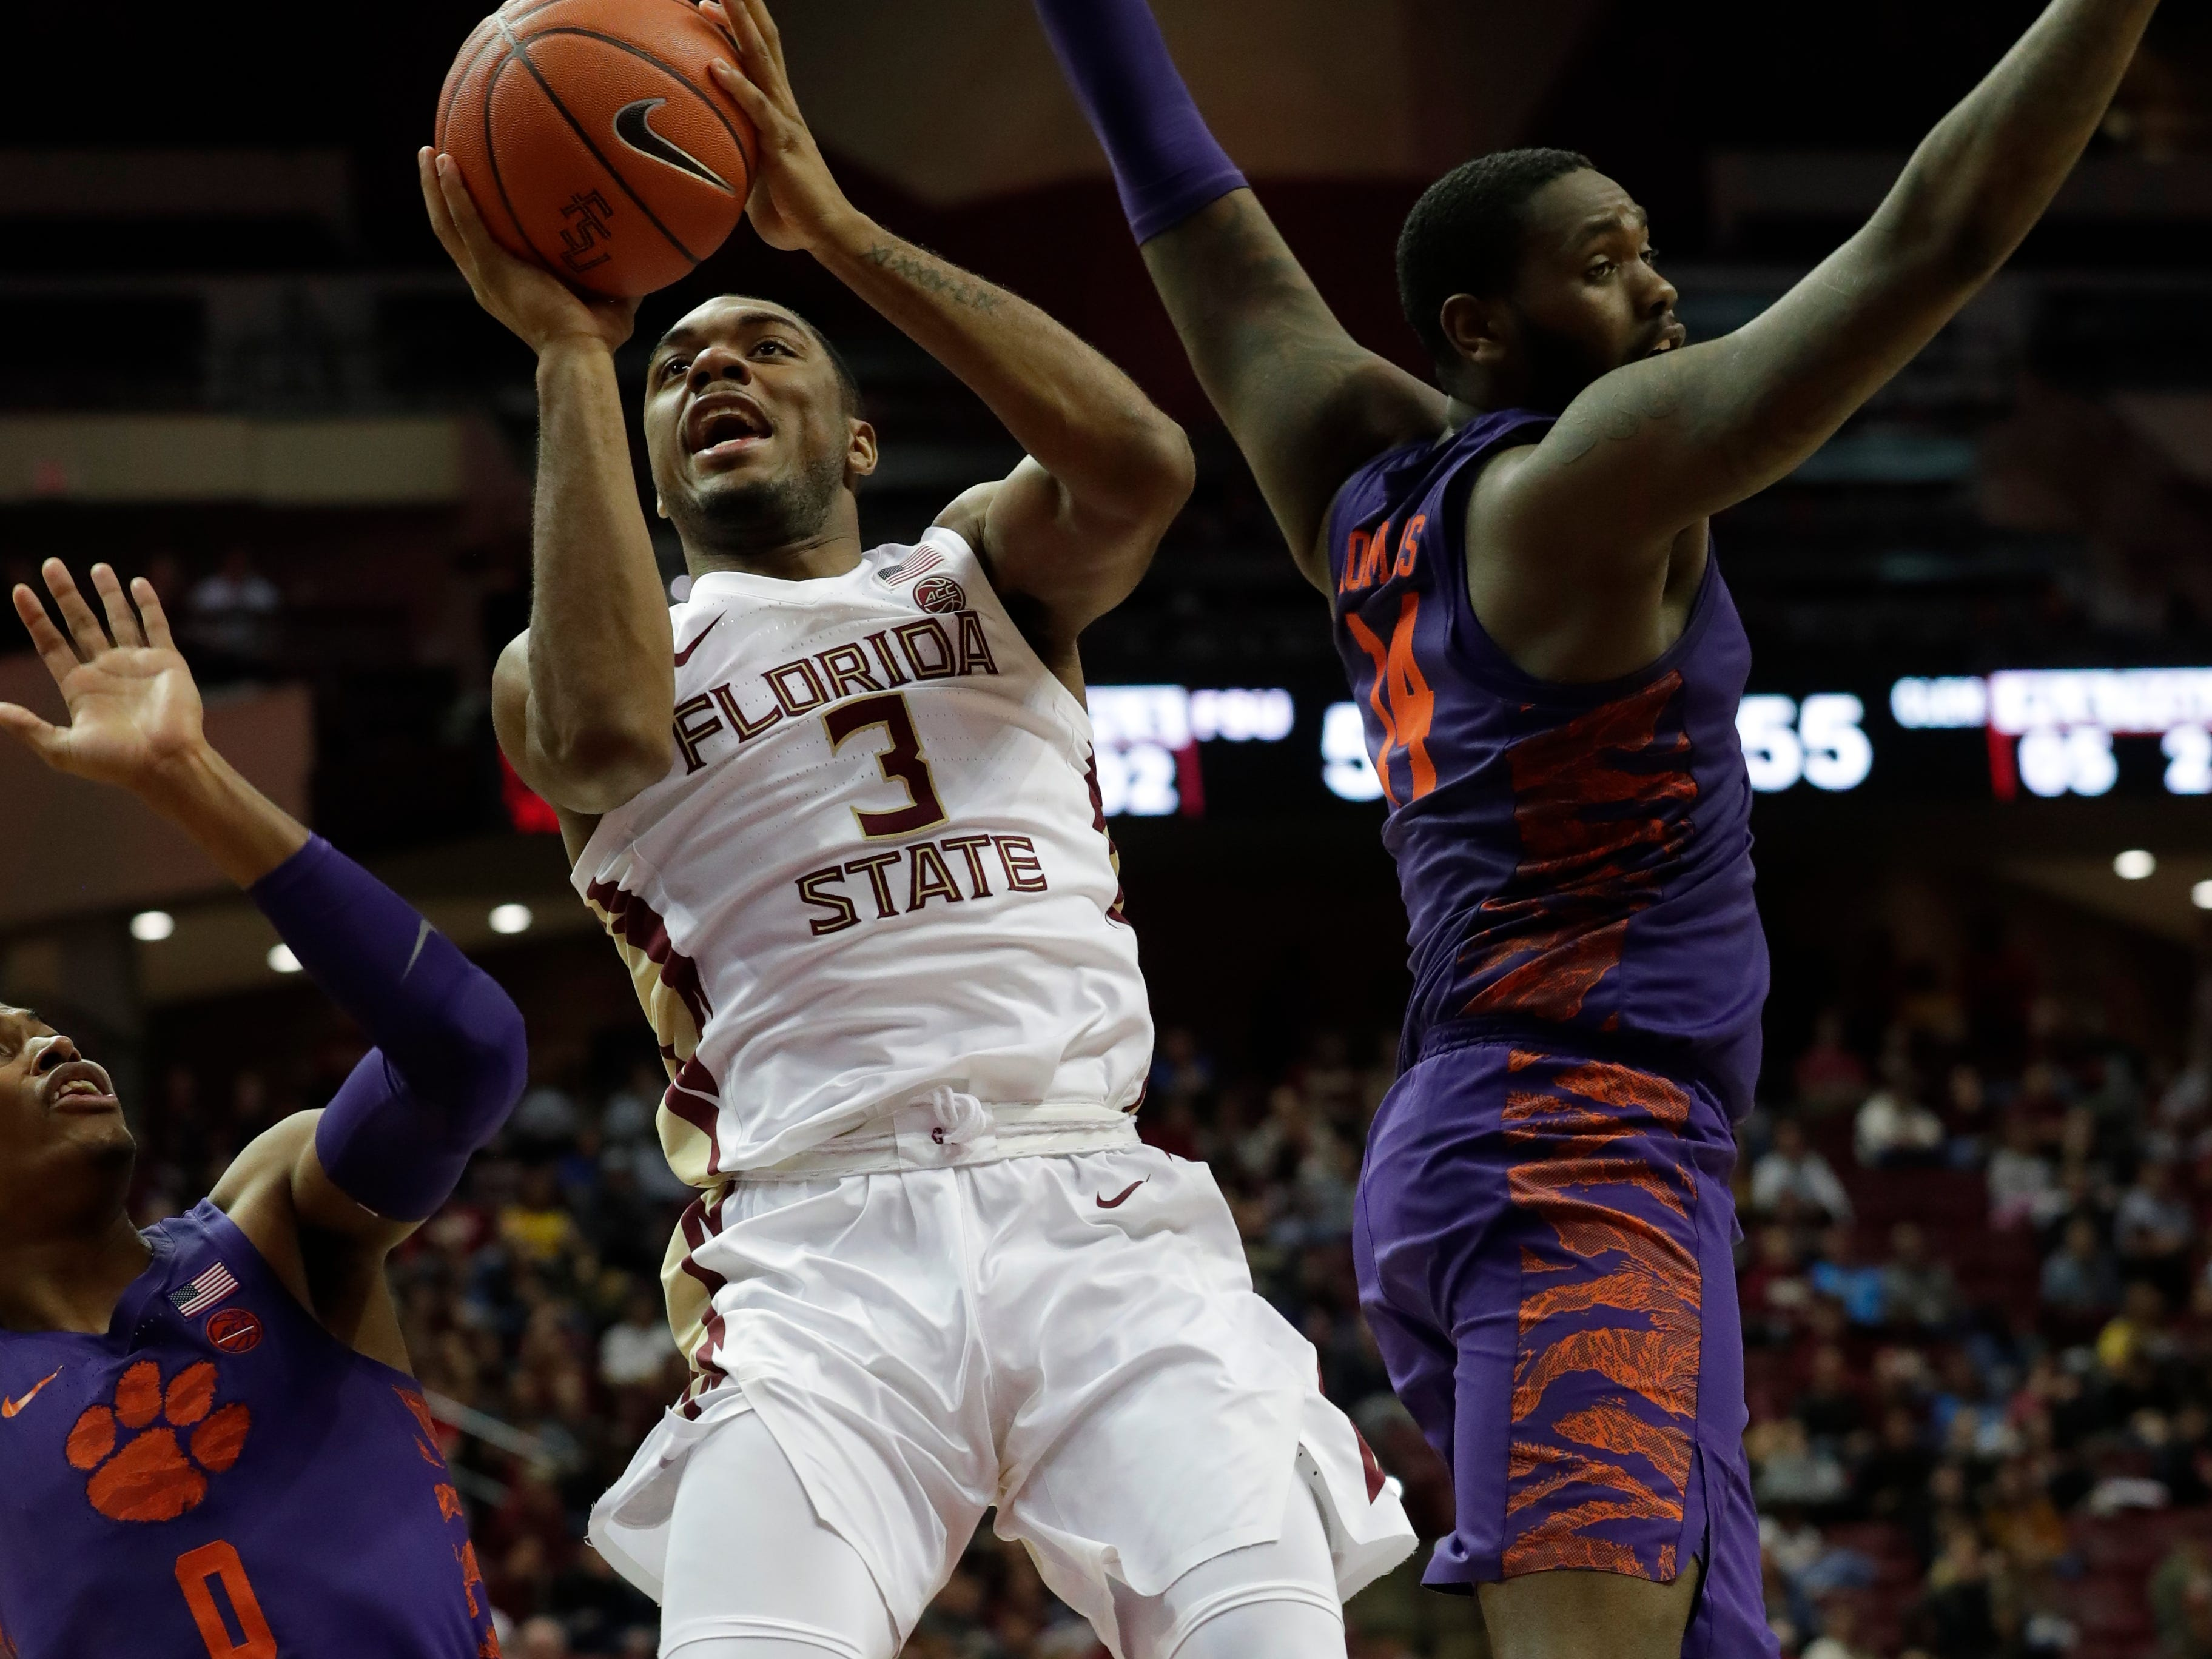 Florida State Seminoles guard Trent Forrest (3) shoots from inside the paint with Clemson Tigers guard Clyde Trapp (0) and Clemson Tigers forward Elijah Thomas (14) guarding him. The Florida State Seminoles face off against the Clemson Tigers at the Tucker Civic Center, Tuesday, Jan. 22, 2019.